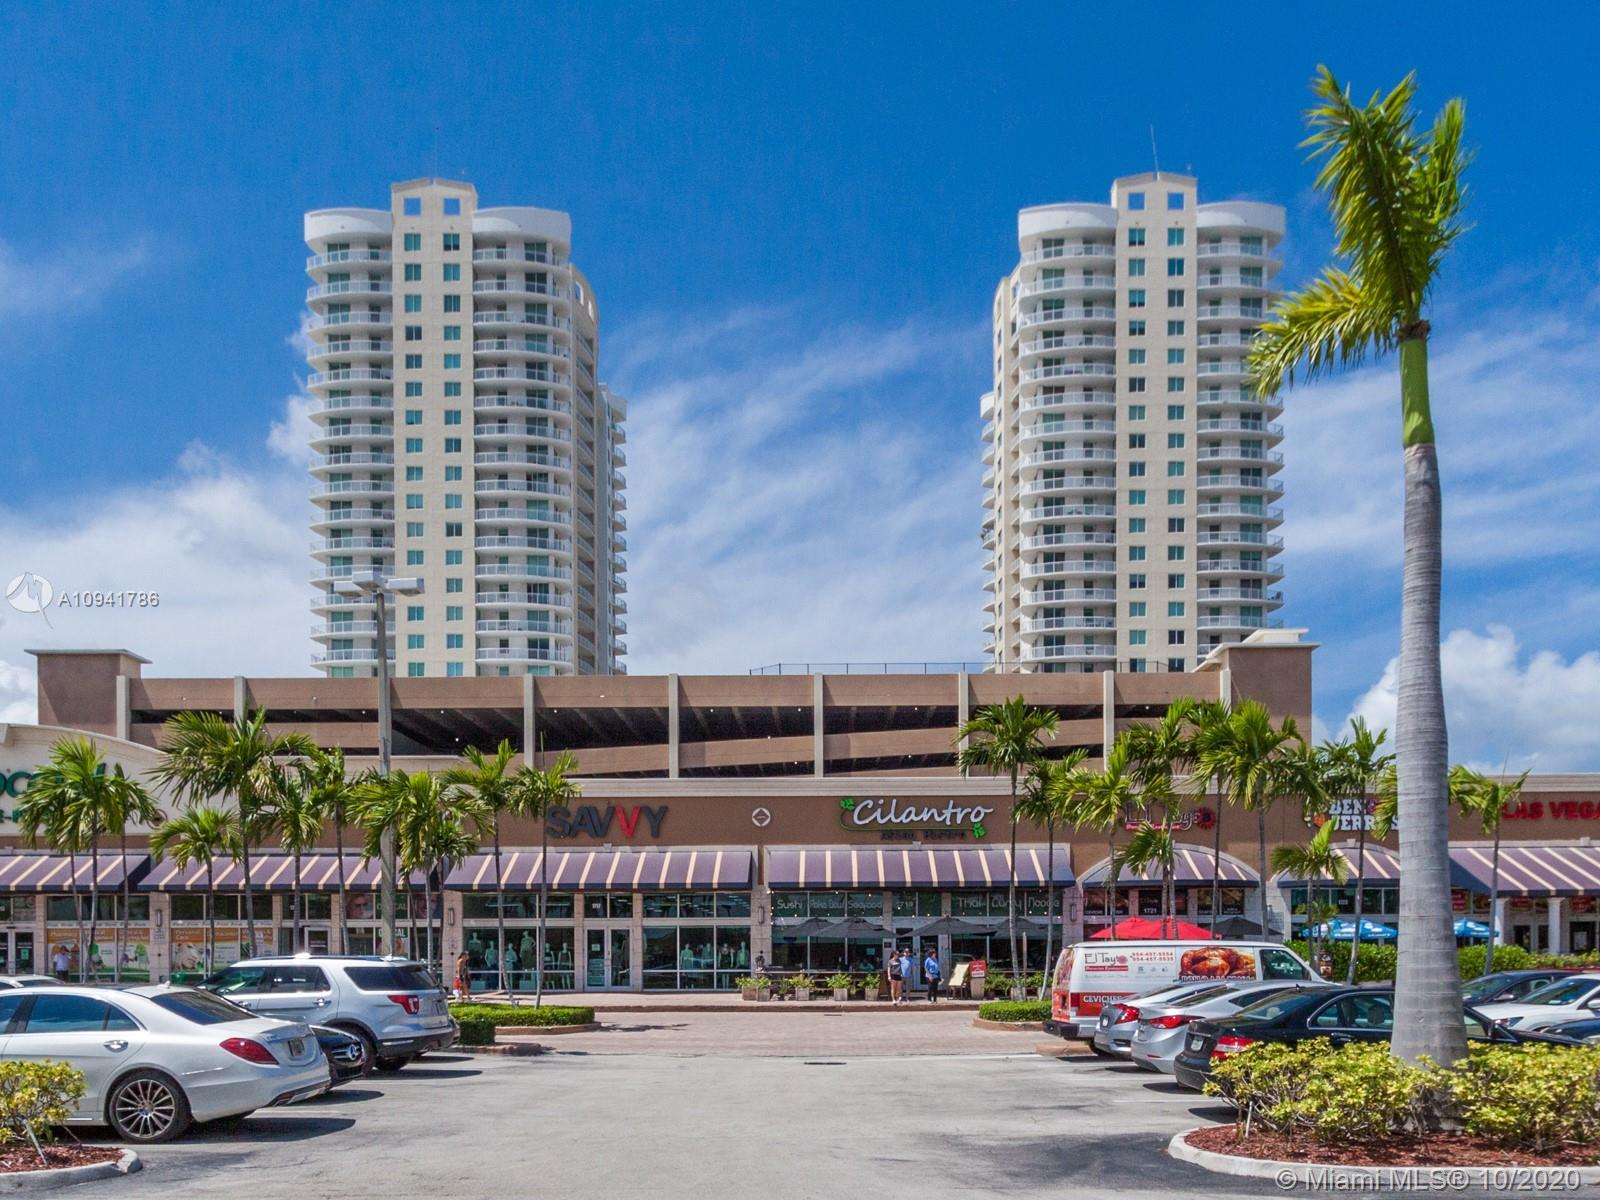 One of the most popular units in the complex. The Unit is 1425 Sq Ft, 2 bedroom /2 bath featuring a